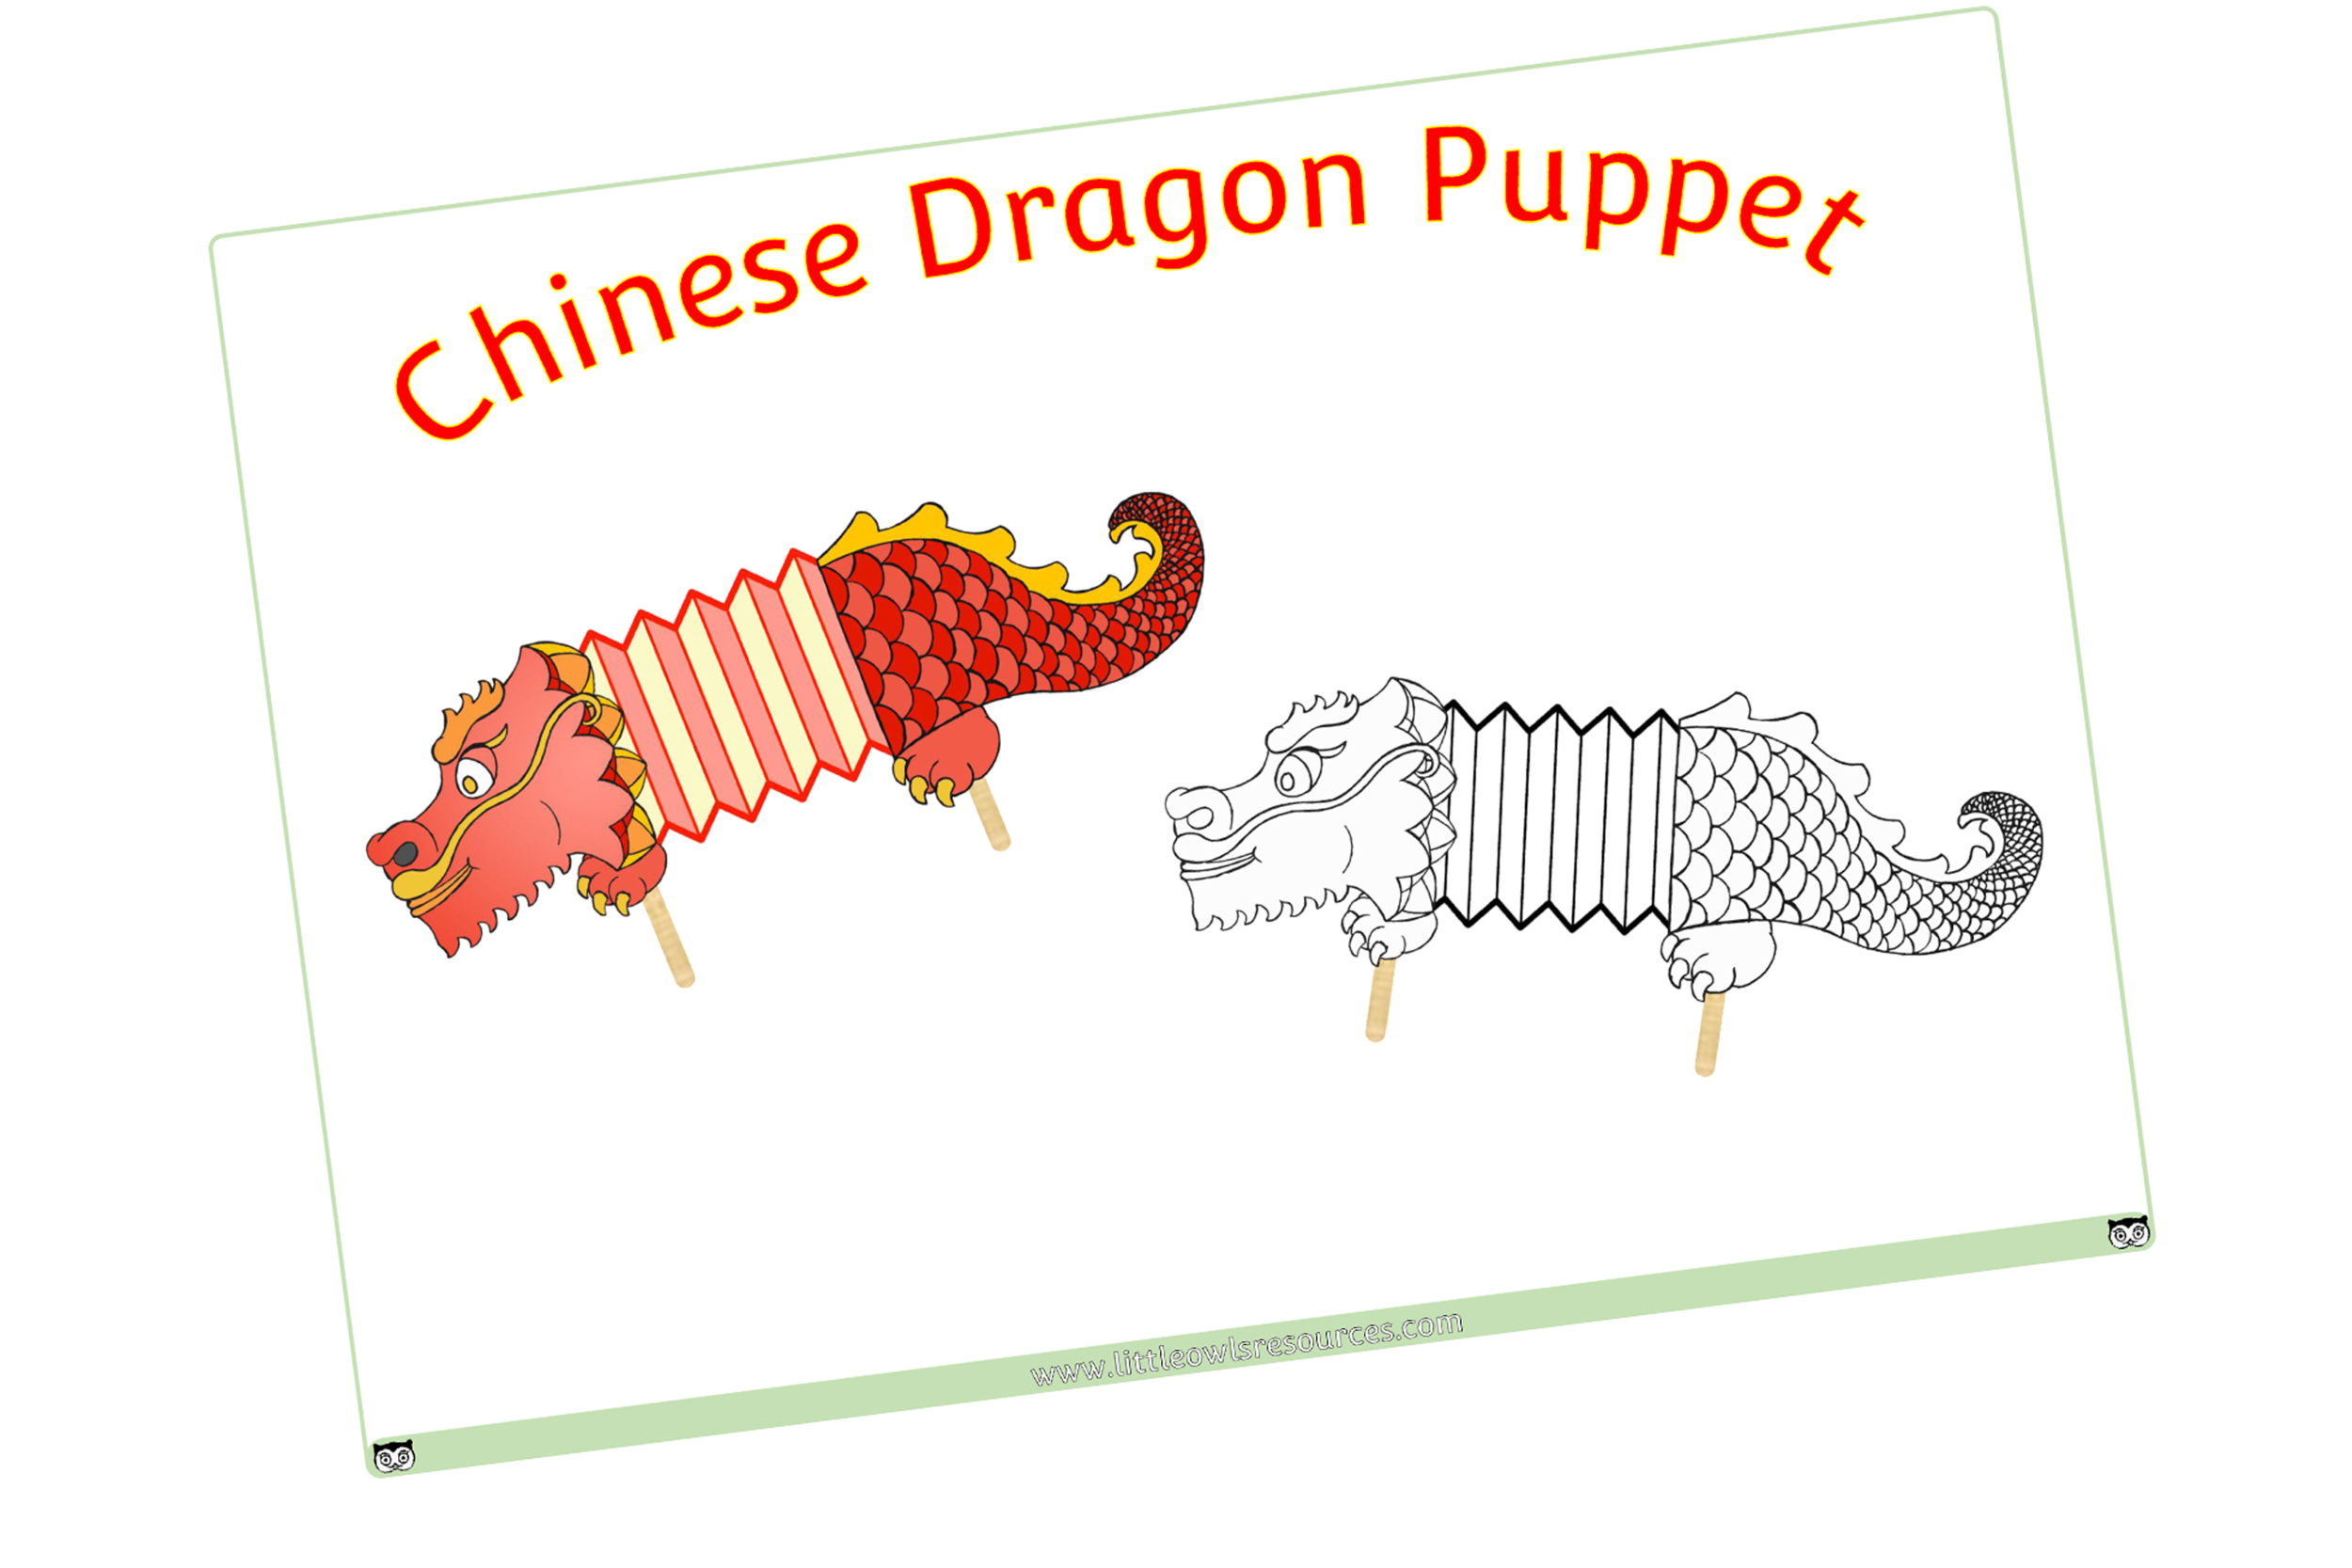 CHINESE DRAGON PUPPET